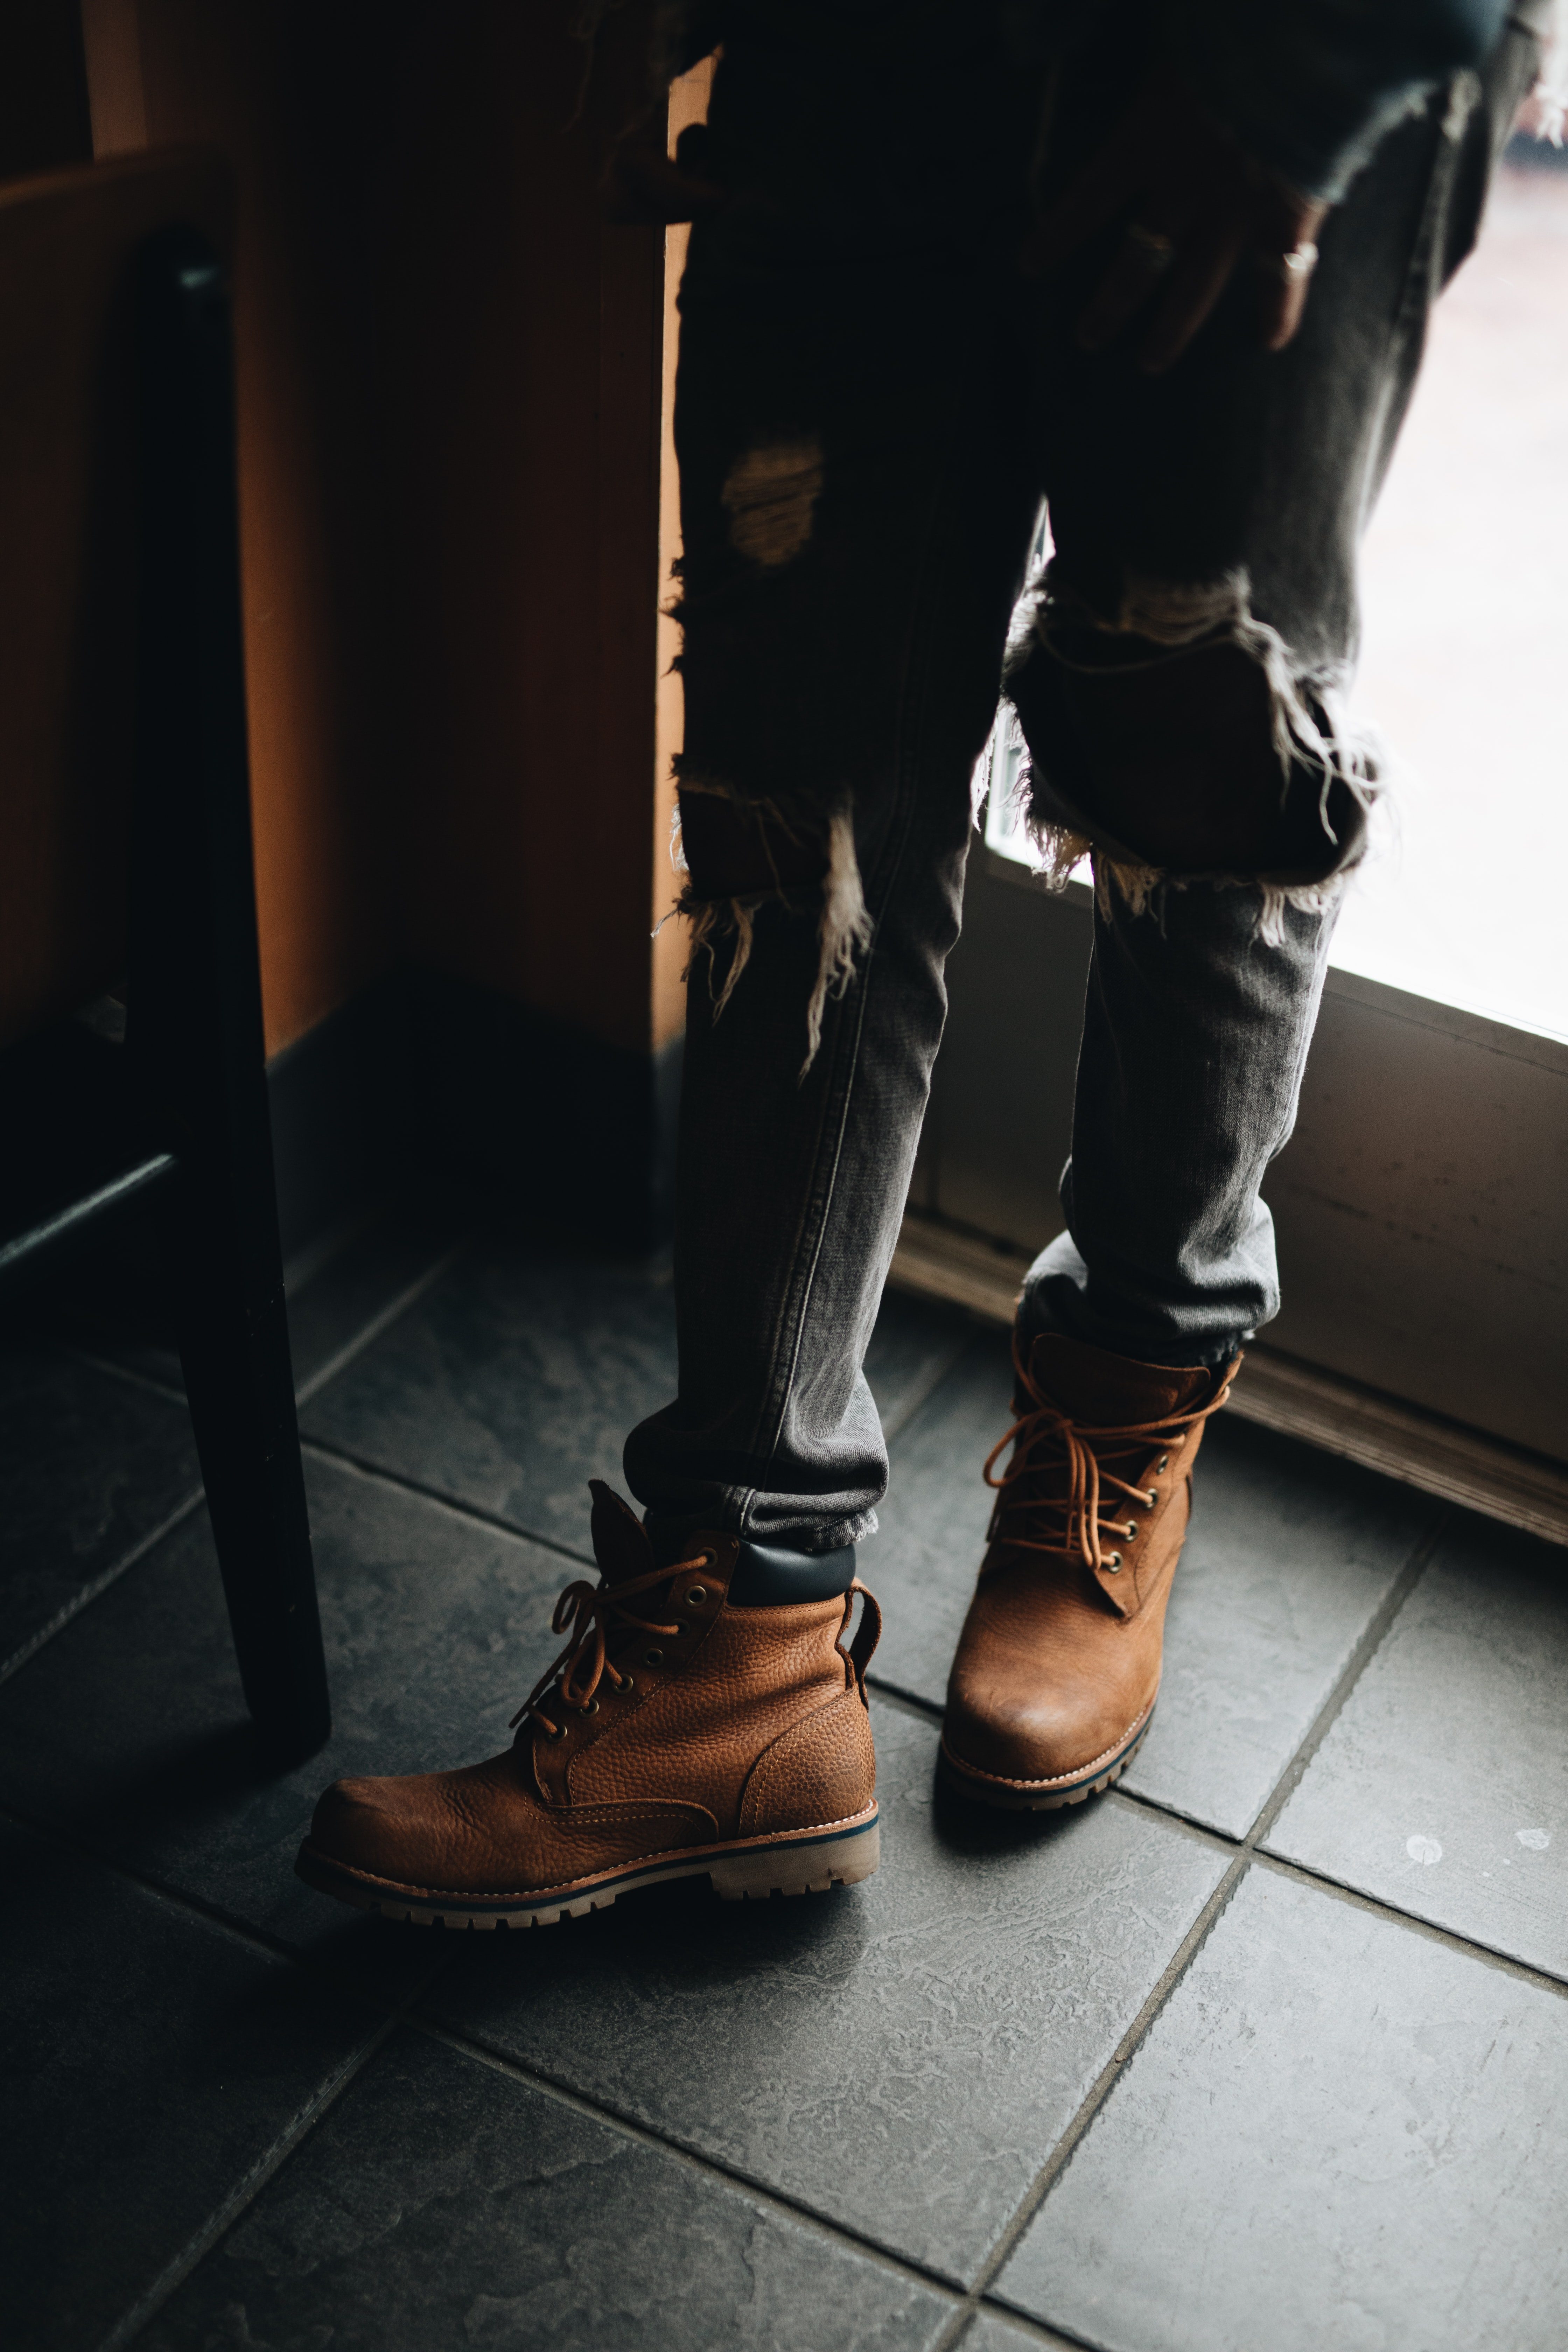 person wearing distressed blue denim jeans and pair of brown leather work boots beside glass door